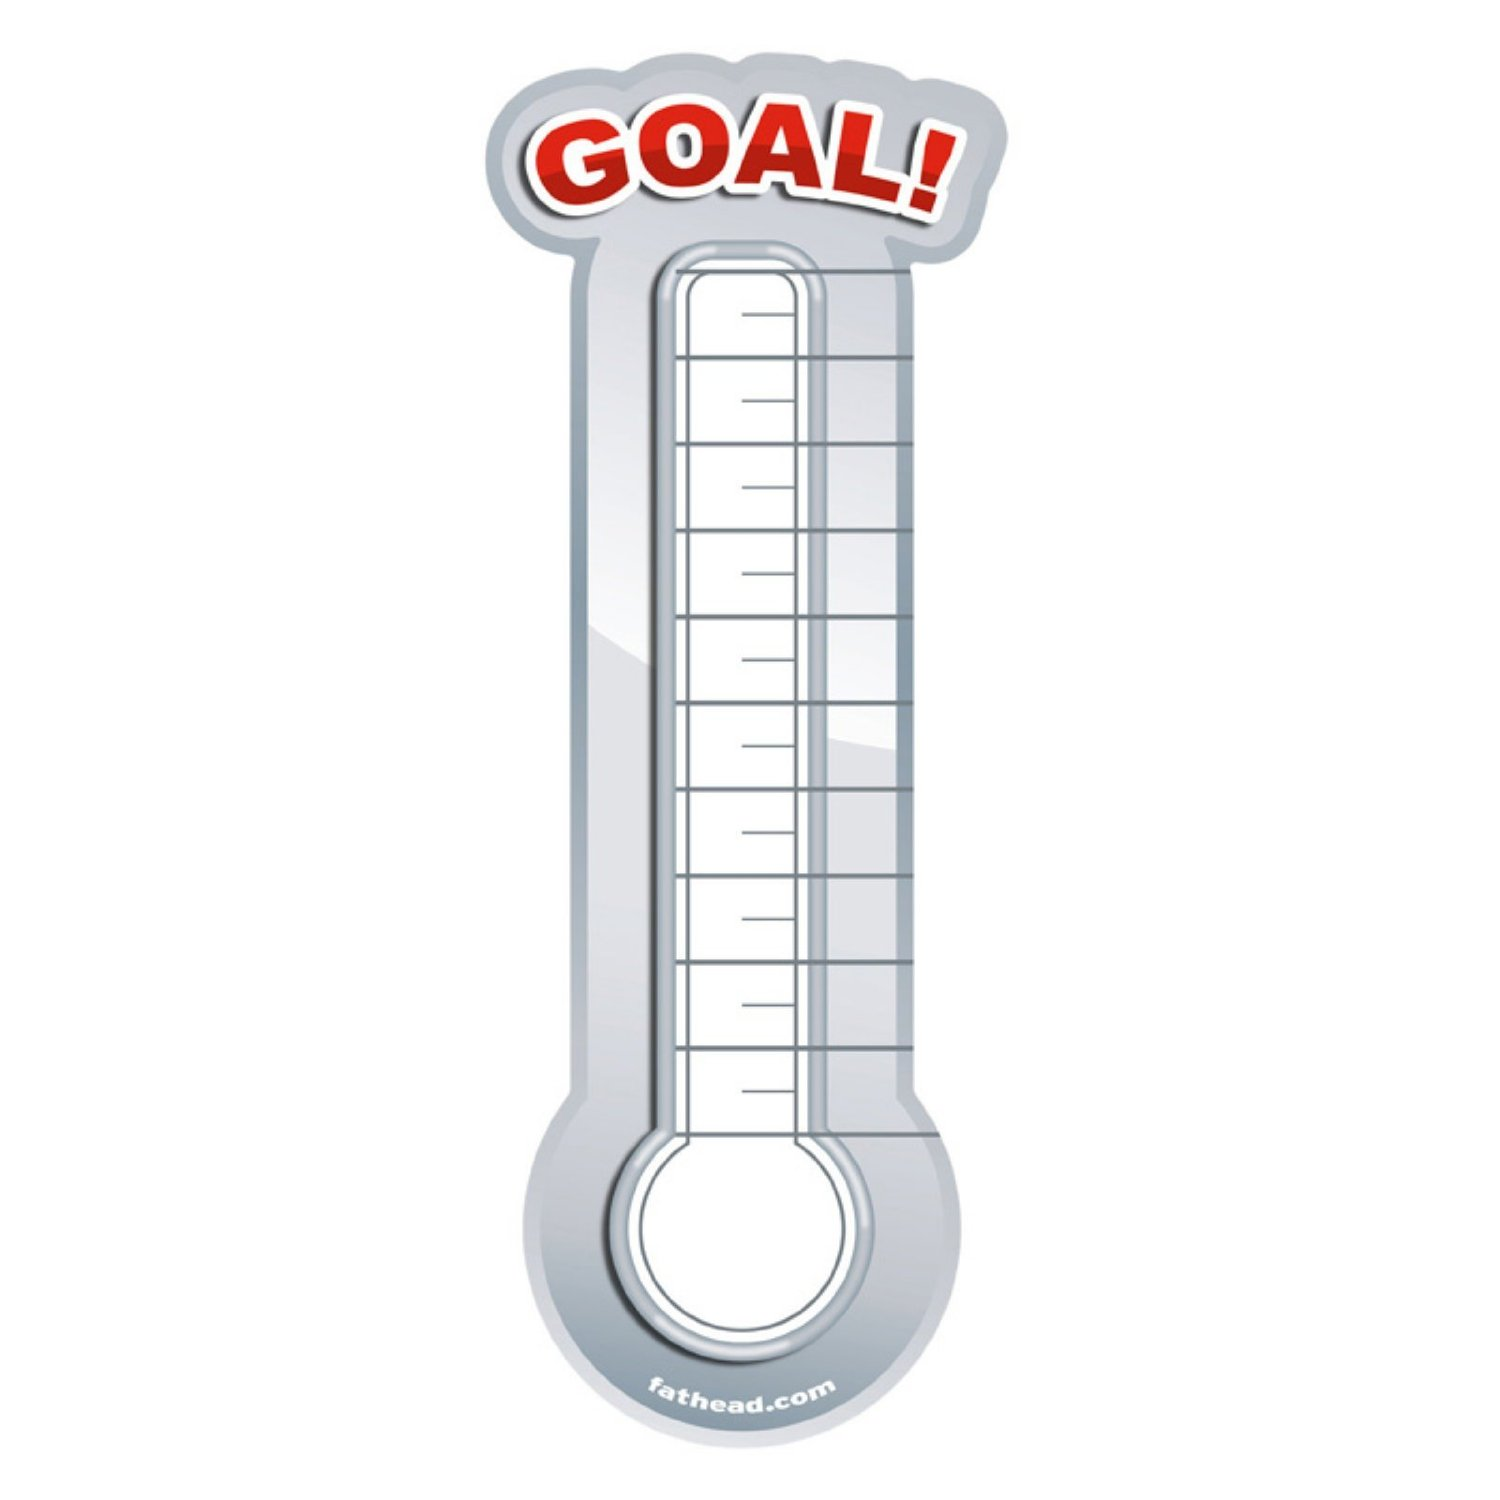 Fundraising thermometer template playbestonlinegames for Charity thermometer template